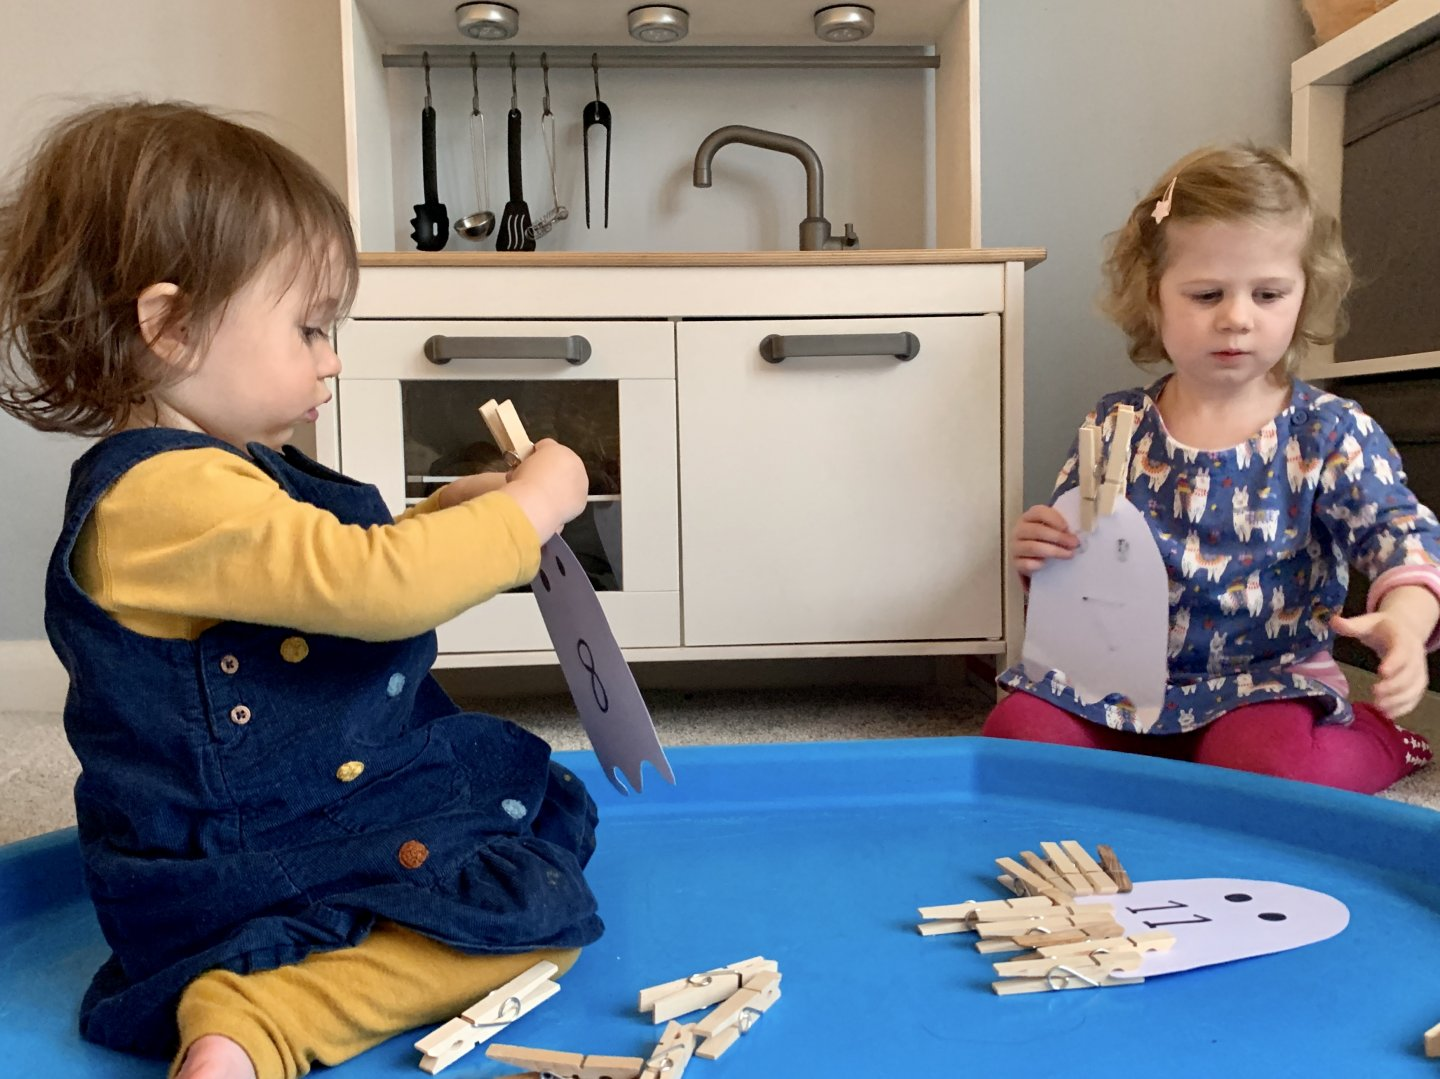 B sits in the centre of the tuff spot, trying to clip a peg onto a ghost. M sits to the right hand side of the tuff spot, holding her cardboard peg ghost in one hand, while reaching for a peg with the other hand.